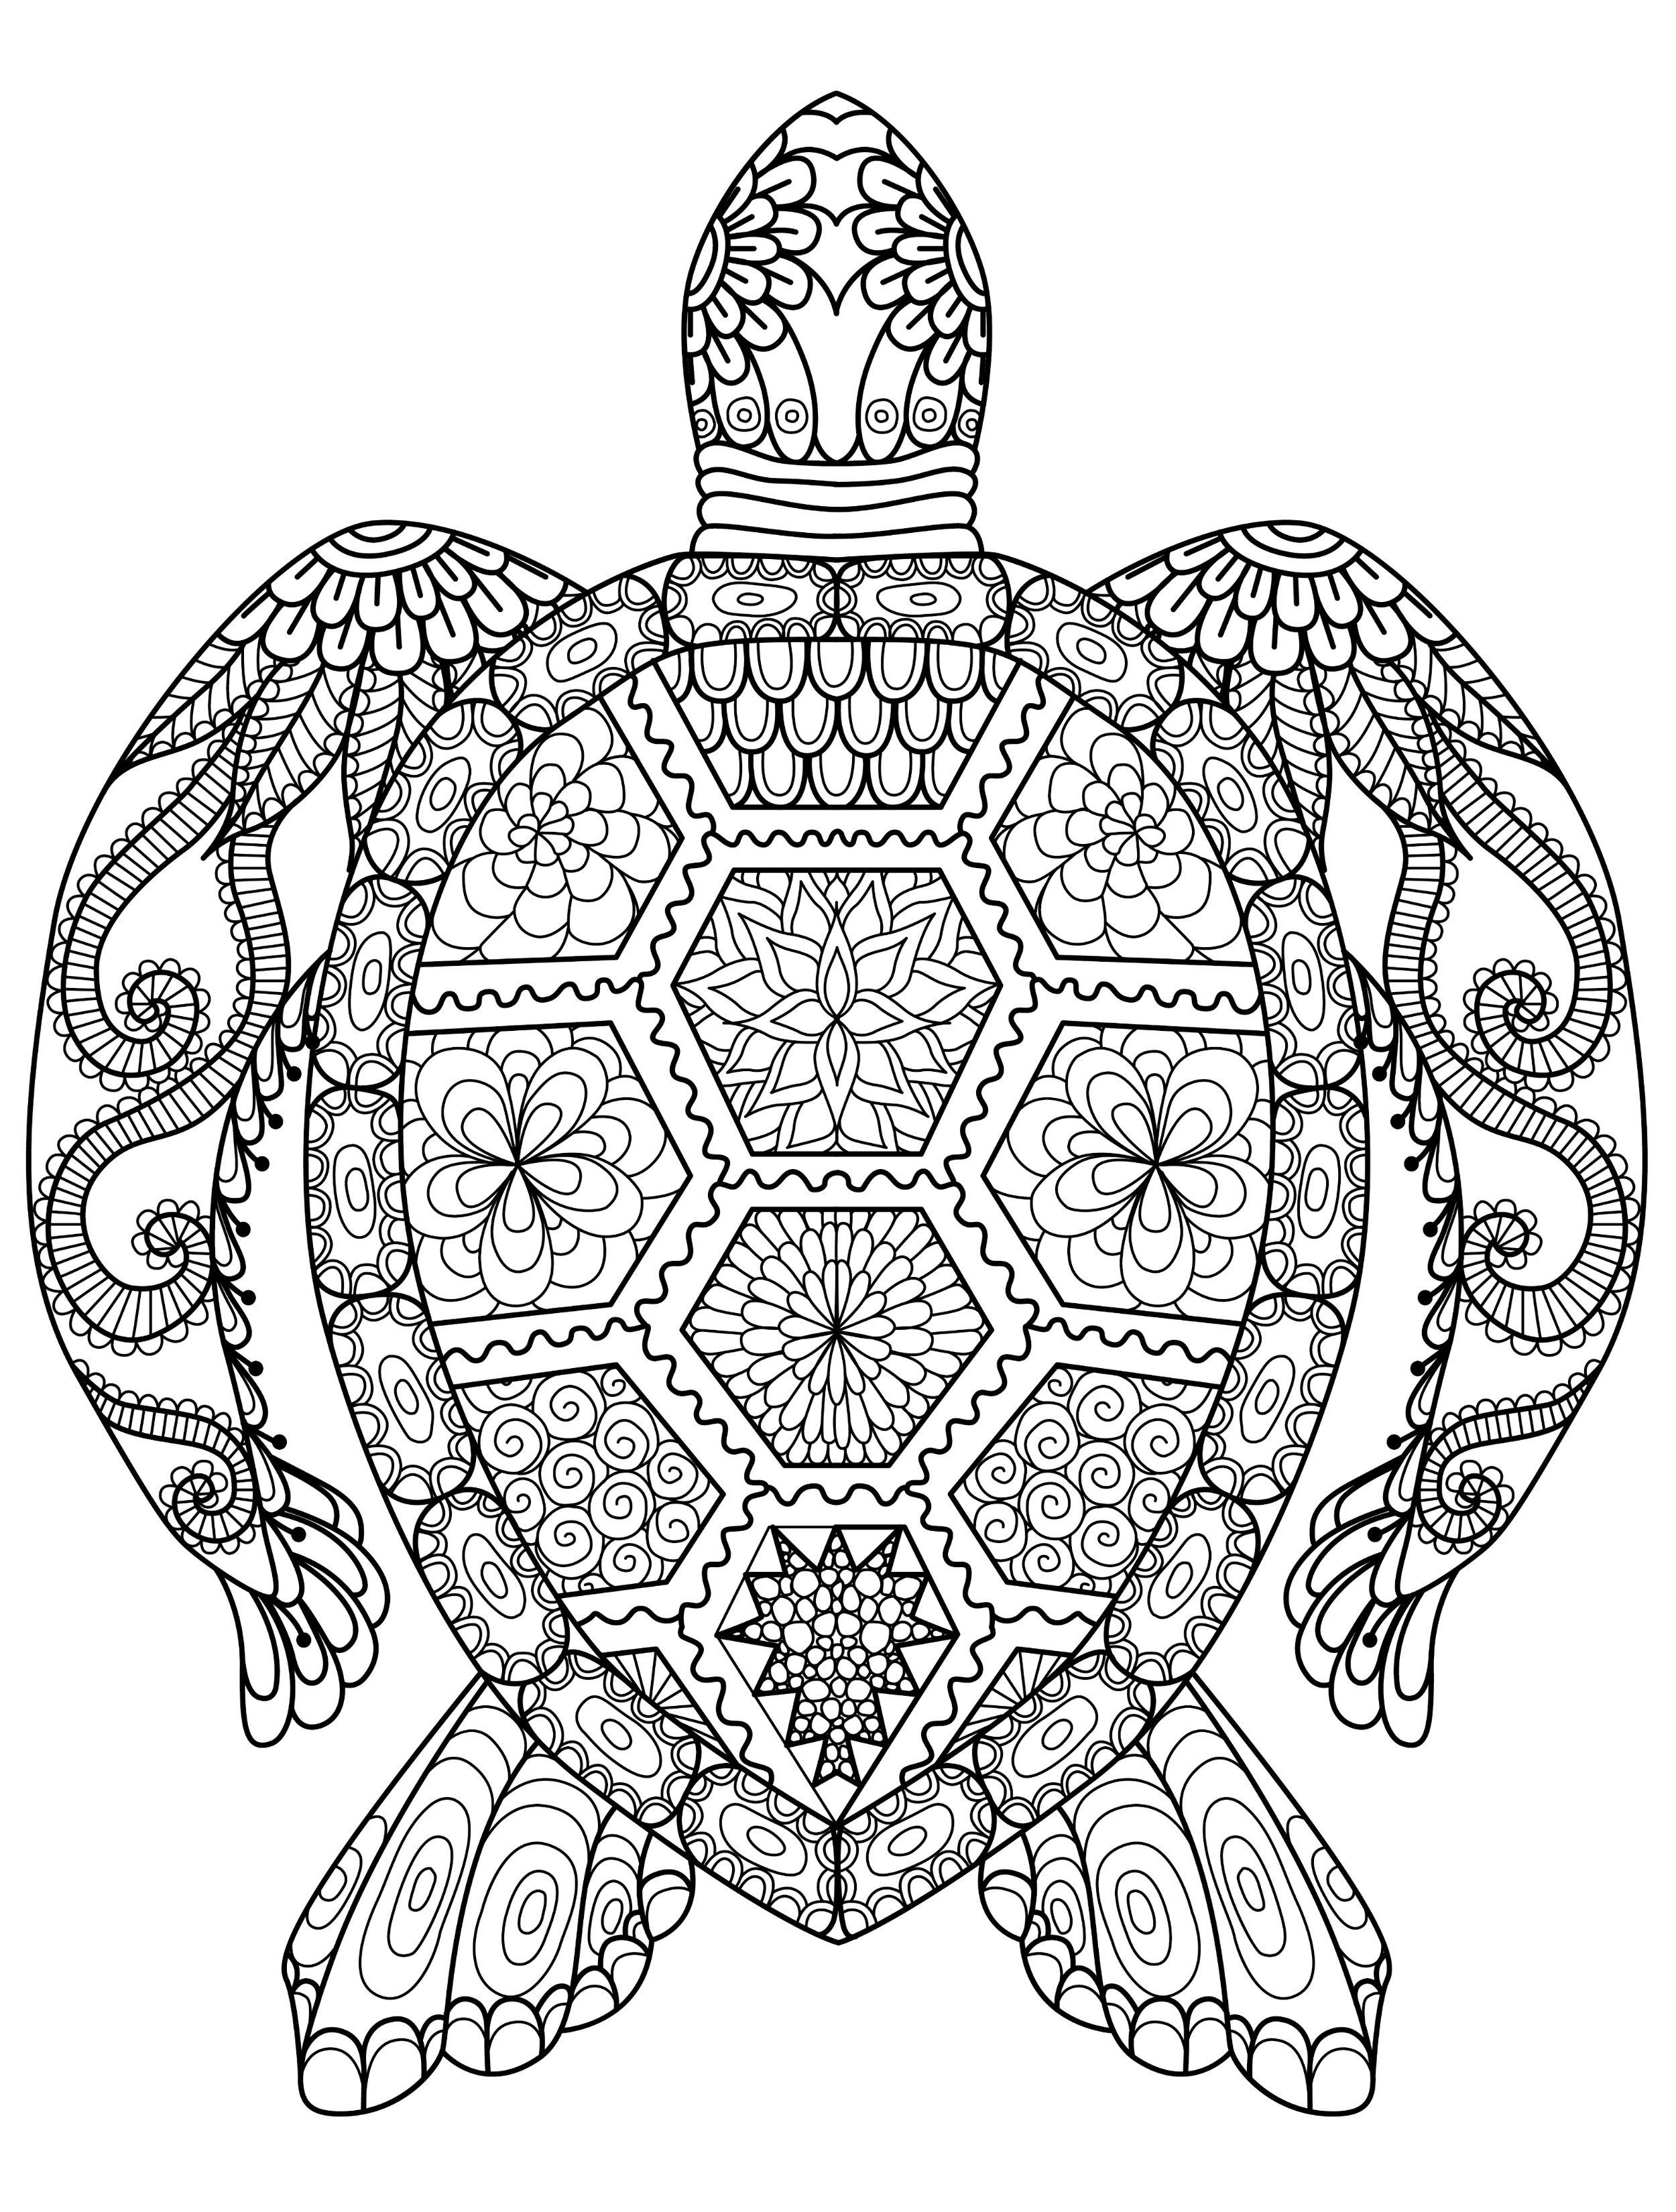 20 Gorgeous Free Printable Adult Coloring Pages … | Adult Coloring - Free Printable Coloring Pages For Adults